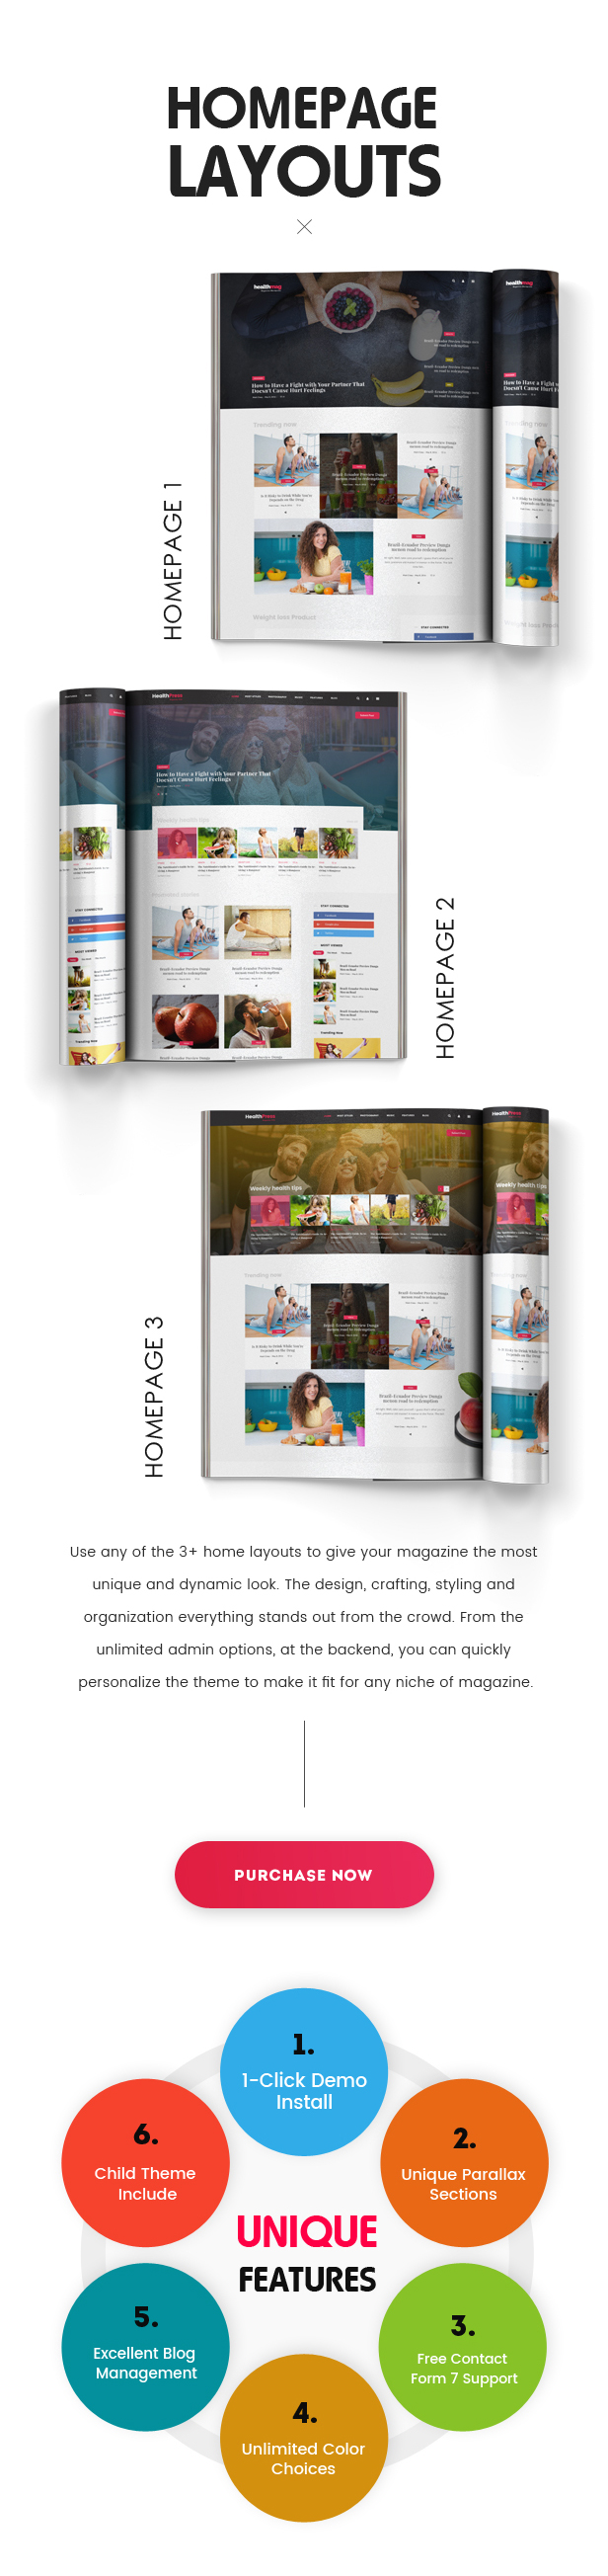 DailyHealth - A Professional Health and Medical Blog and Magazine WordPress Theme - 4